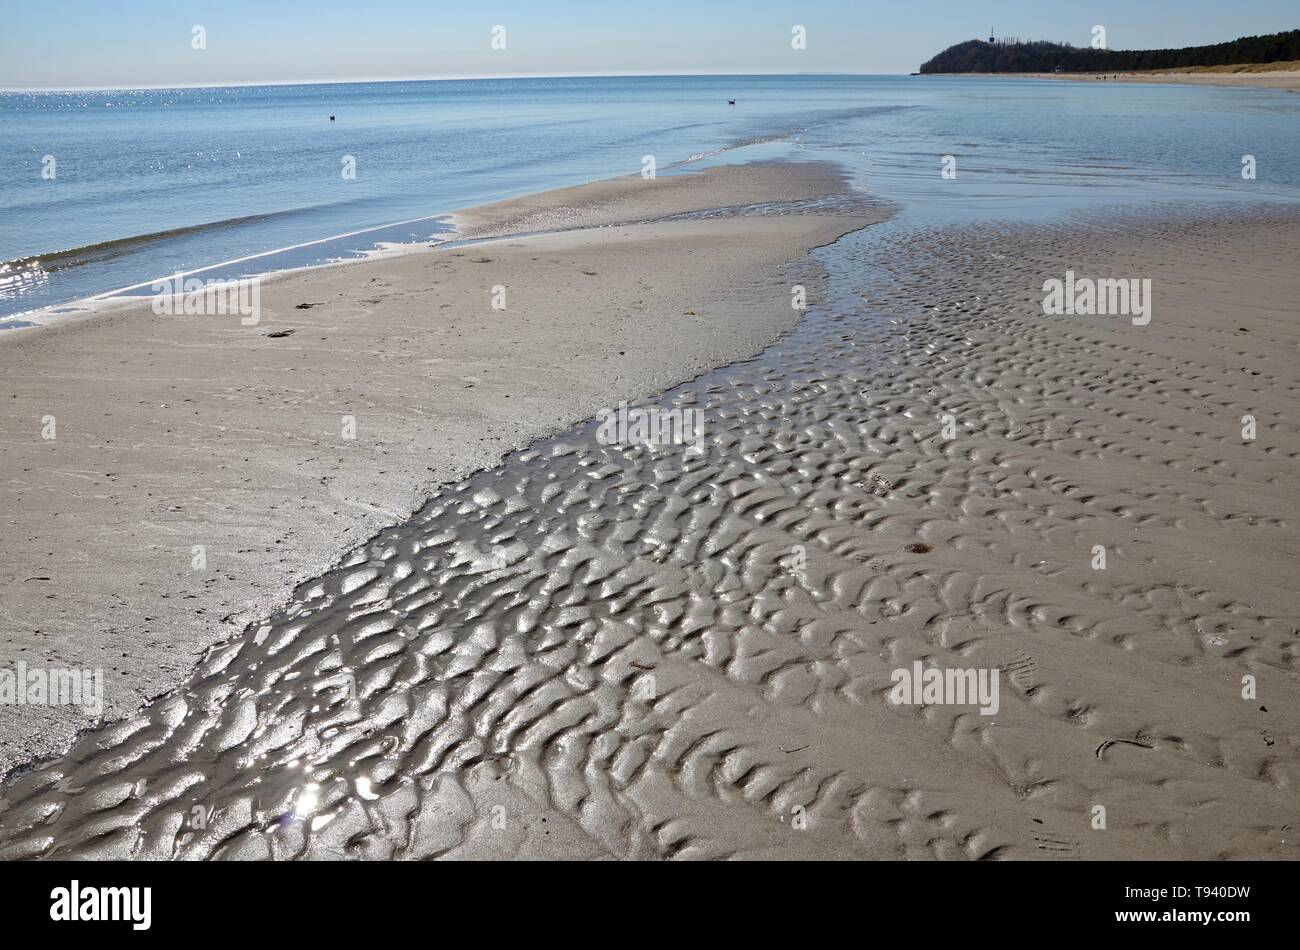 Island Ruegen in Germany, Mecklenburg Vorpommern(Mecklenburg West Pomerania),Baltic sea,the beach of the county Thiessow on peninsula Moenchgut,spring - Stock Image